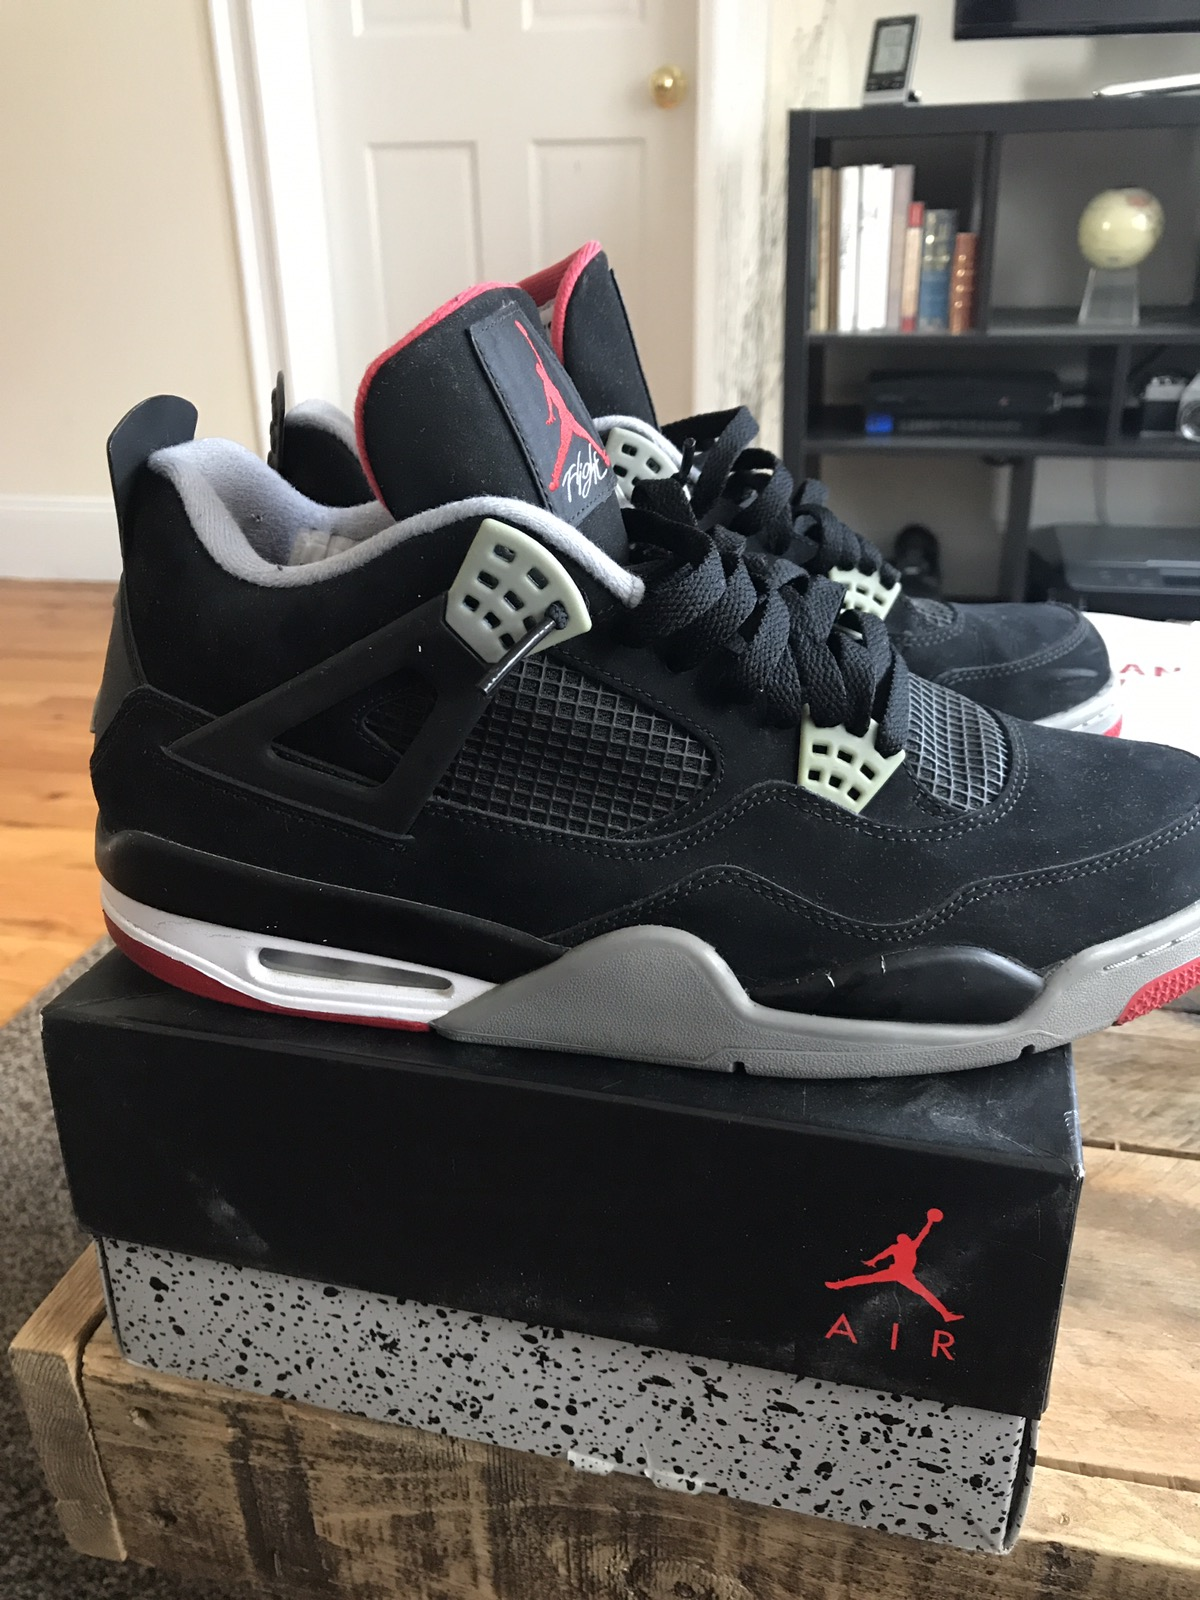 1959c0db54a9 Jordan Brand Bred 4s Size 12 - Low-Top Sneakers for Sale - Grailed